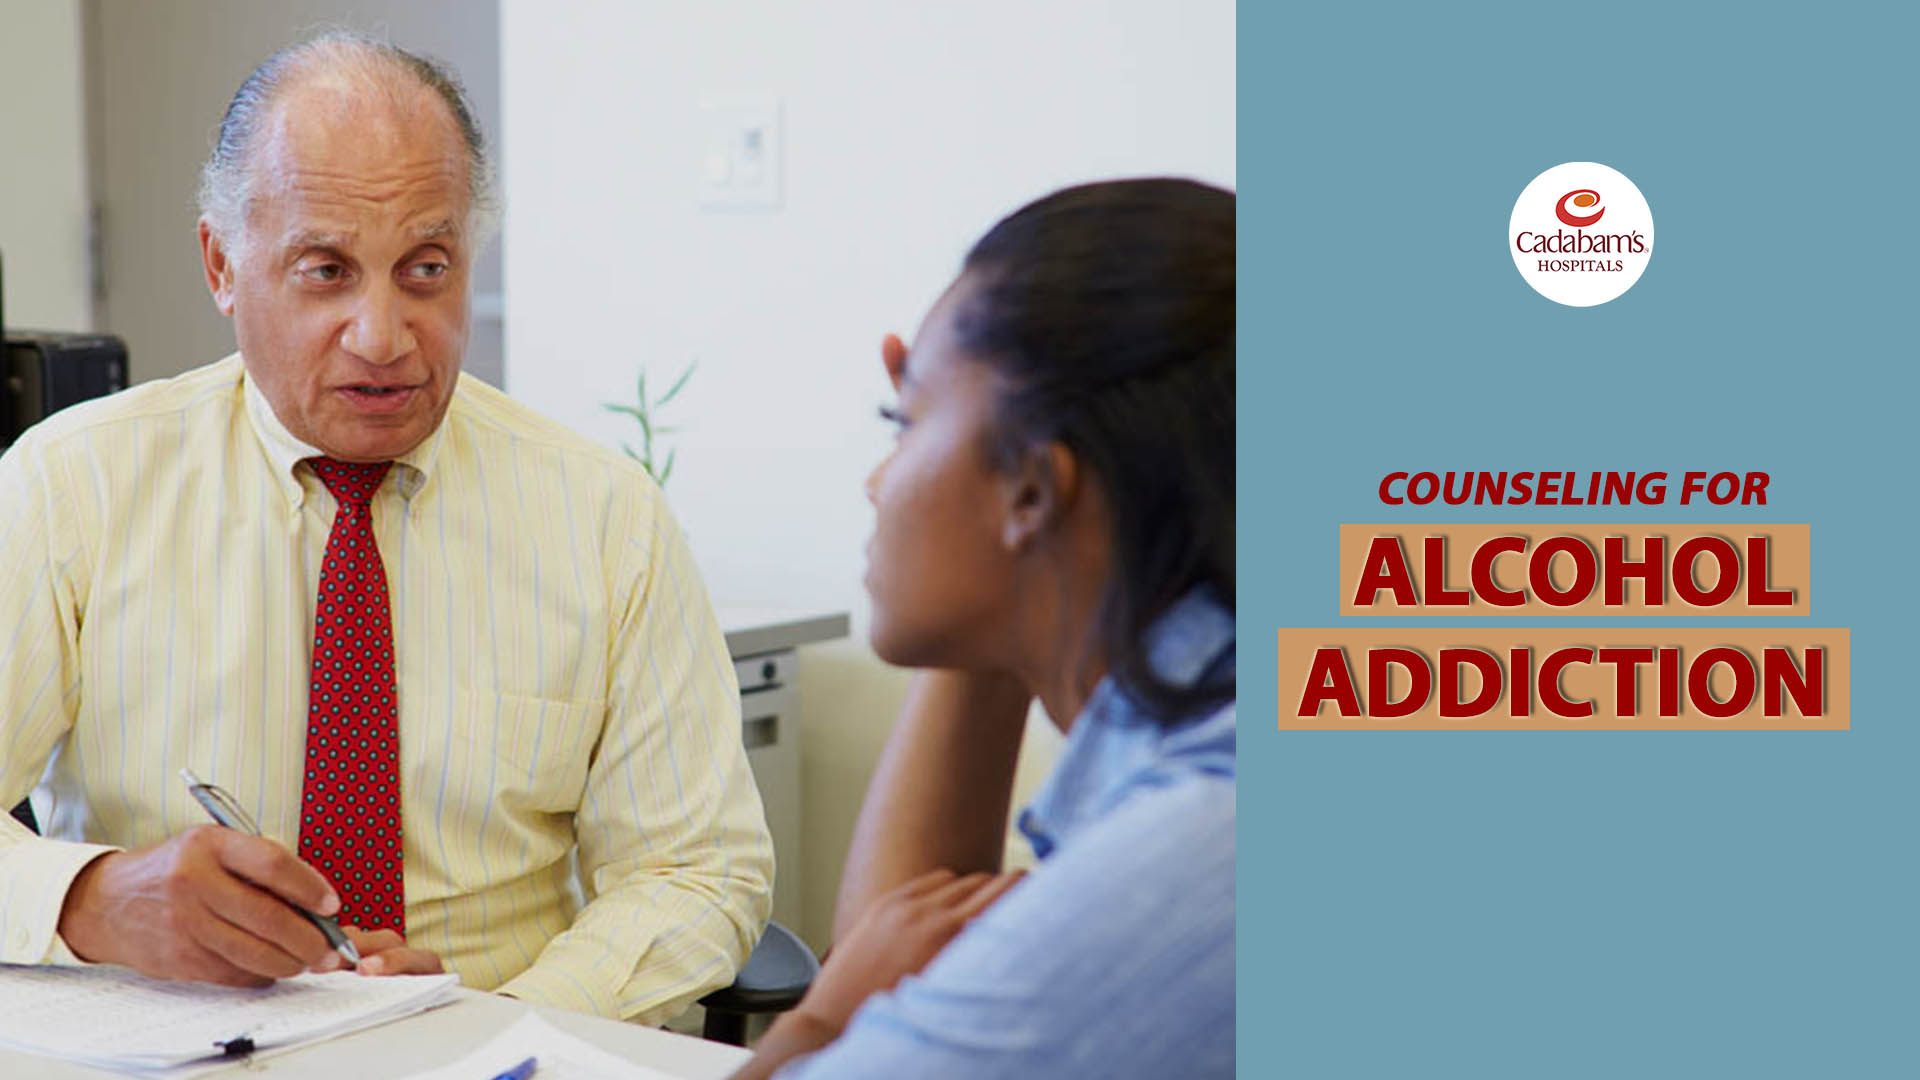 counseling for alcohol